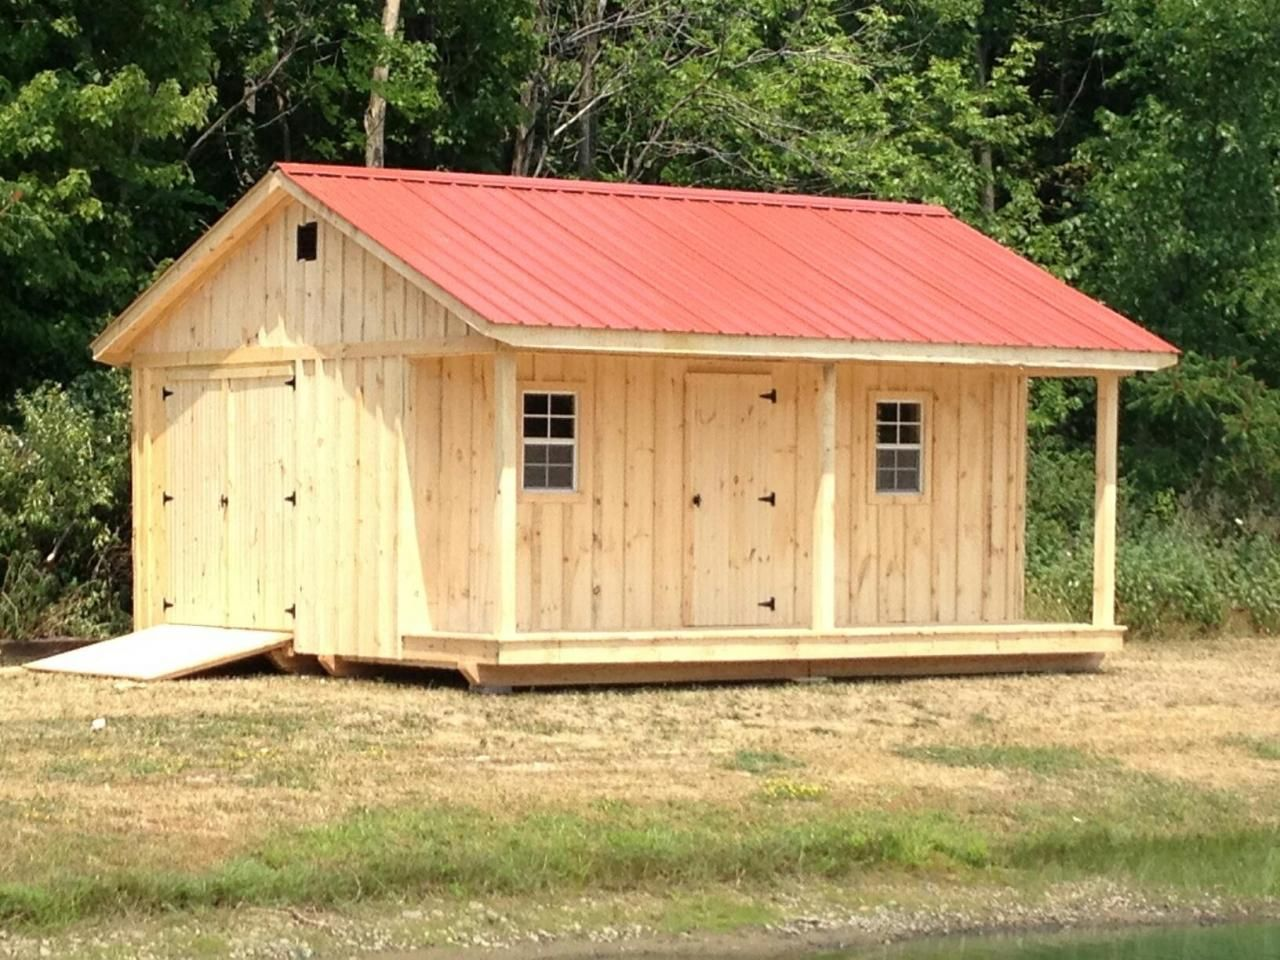 10 39 x 18 39 shed with 4 39 porch metal roof windows and for Shed cupola